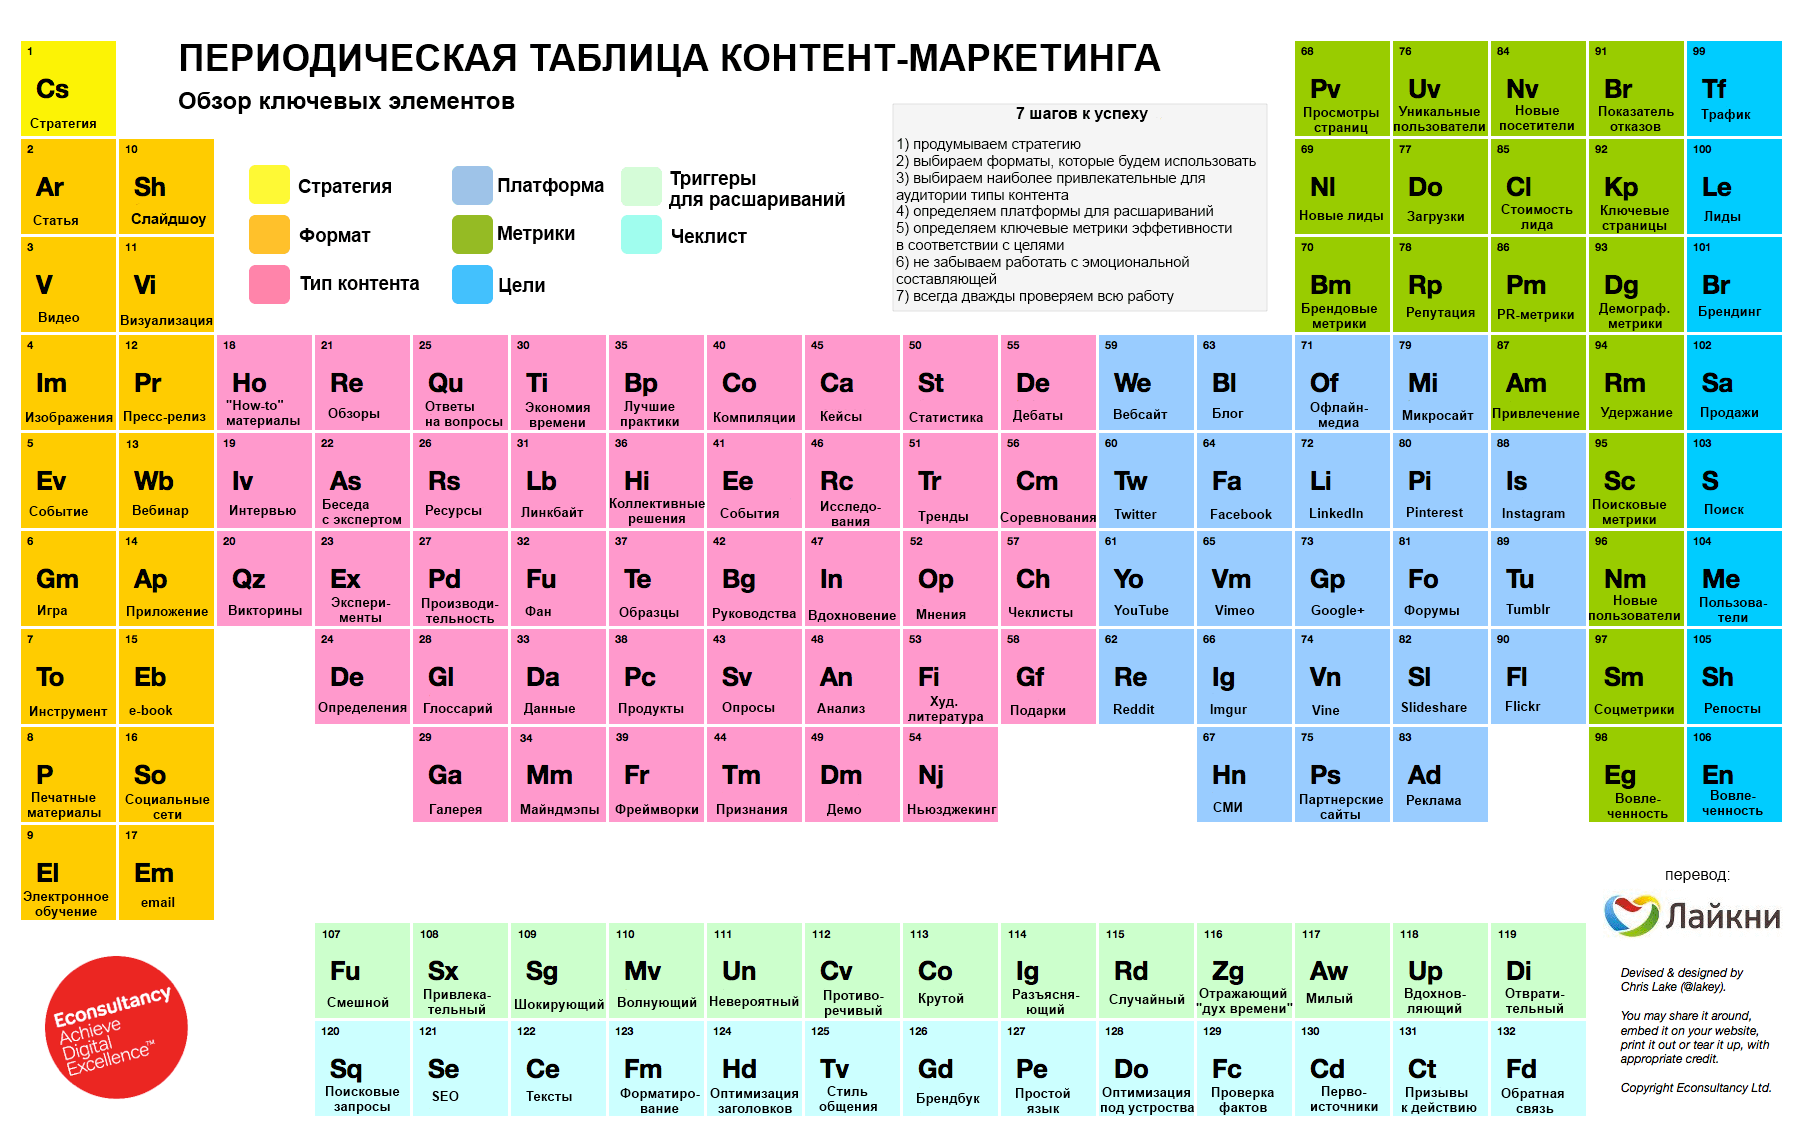 http://madcats.ru/wp-content/uploads/2016/05/The_Periodic_Table_of_Content_Marketing.png